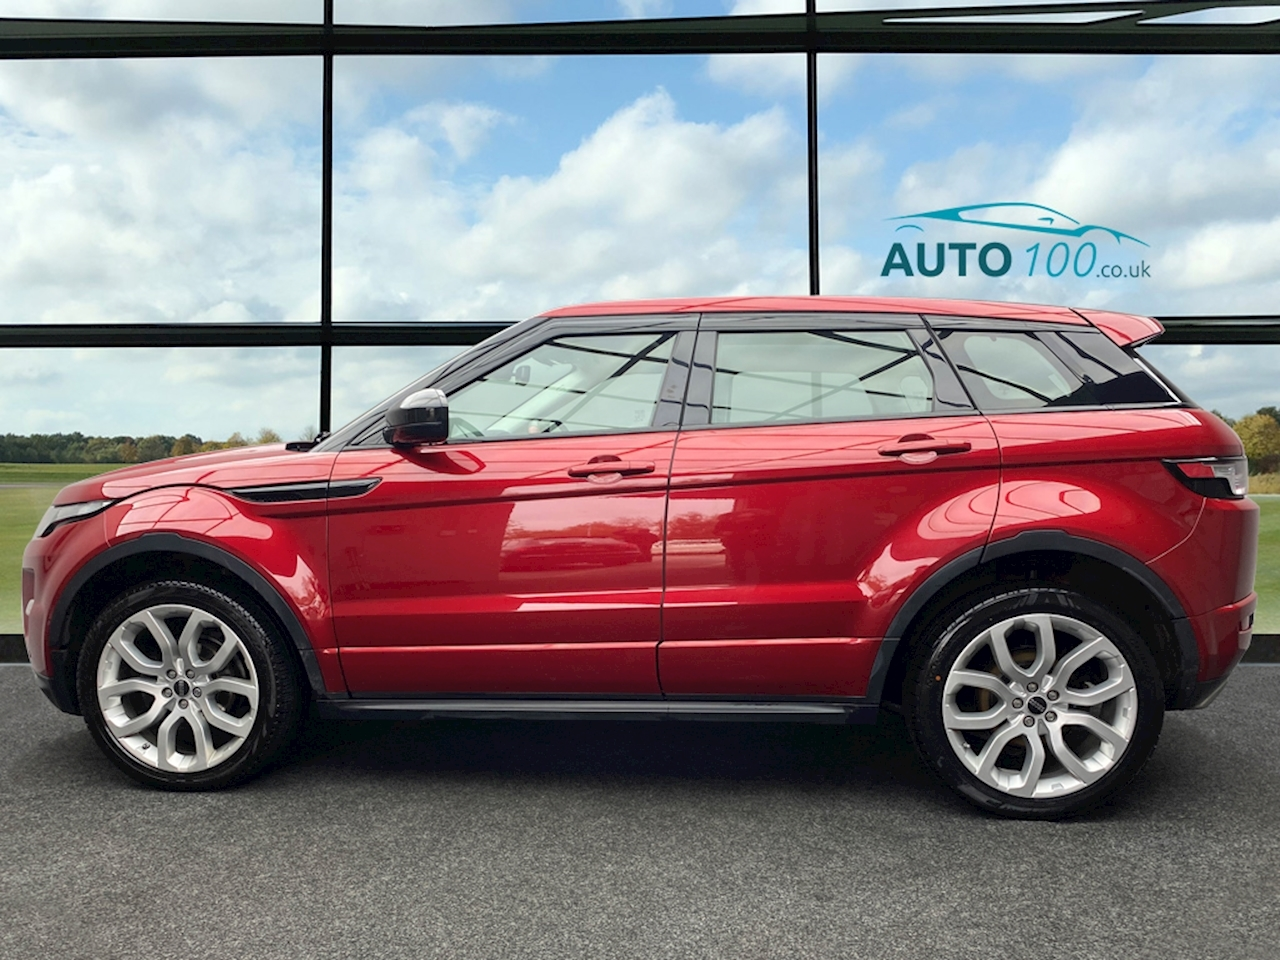 Land Rover Range Rover Evoque Dynamic SUV 2.2 Automatic Diesel